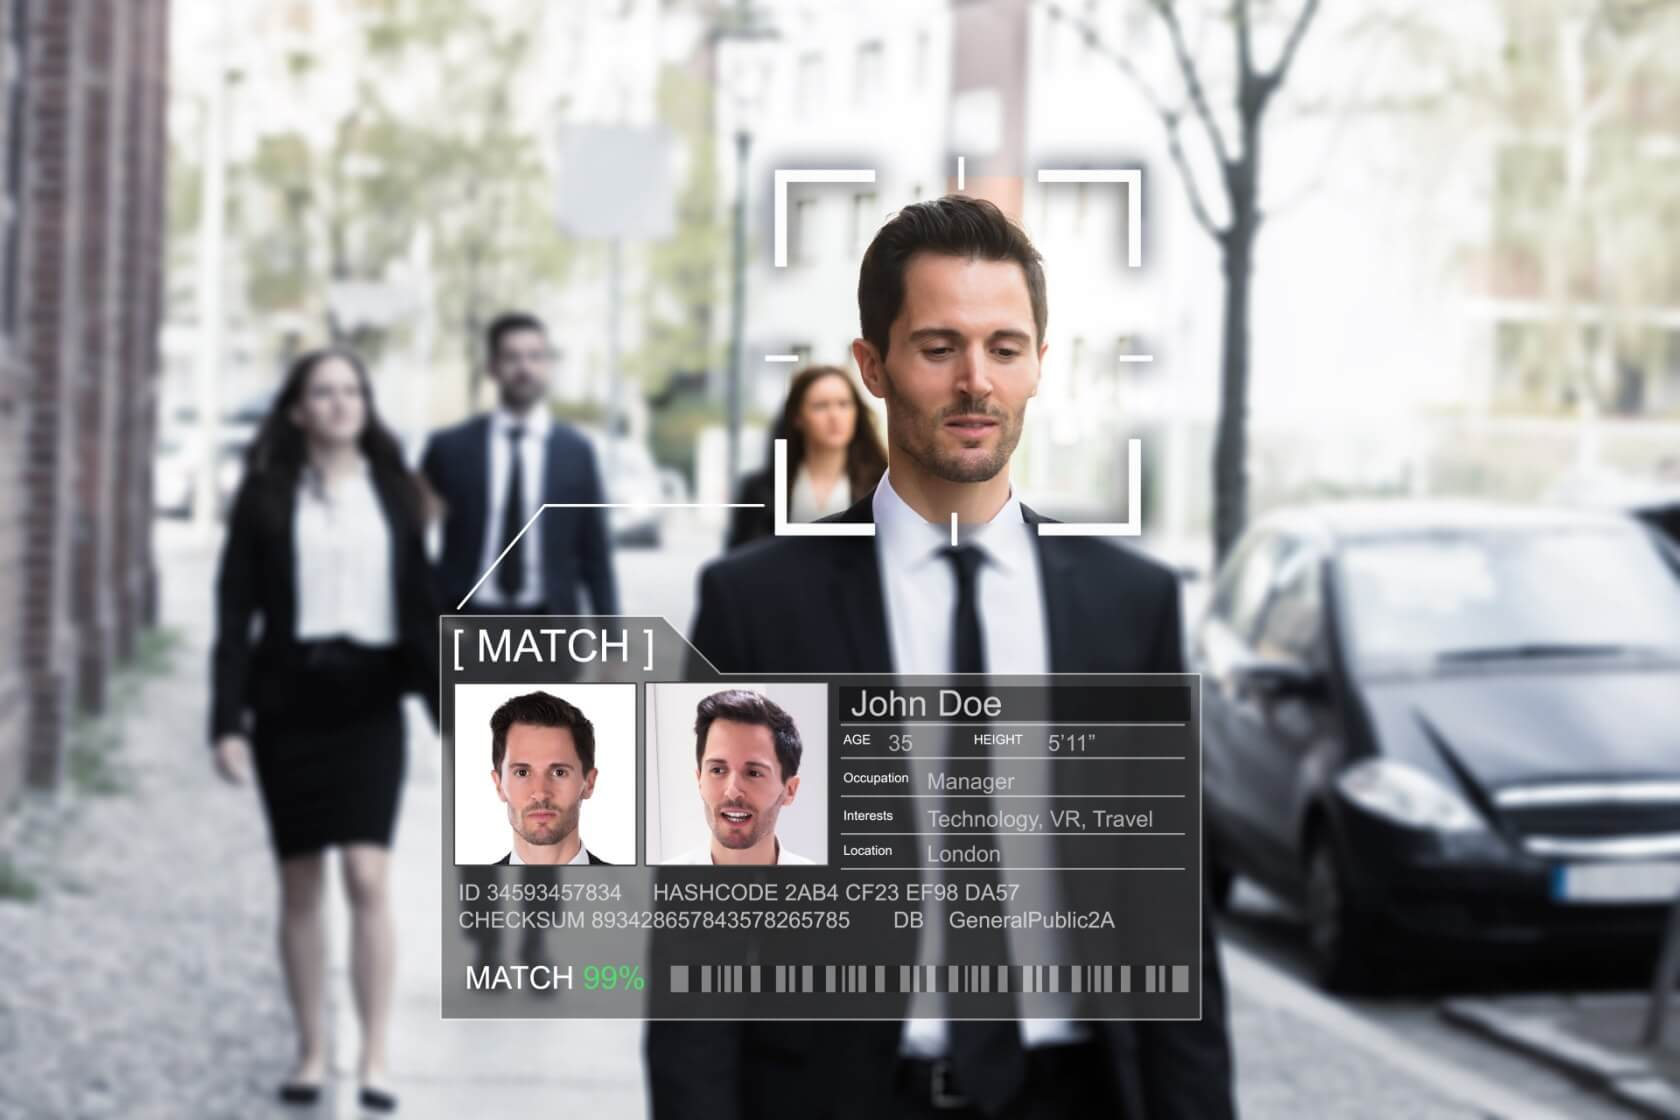 London police will deploy live facial recognition cameras to catch criminals